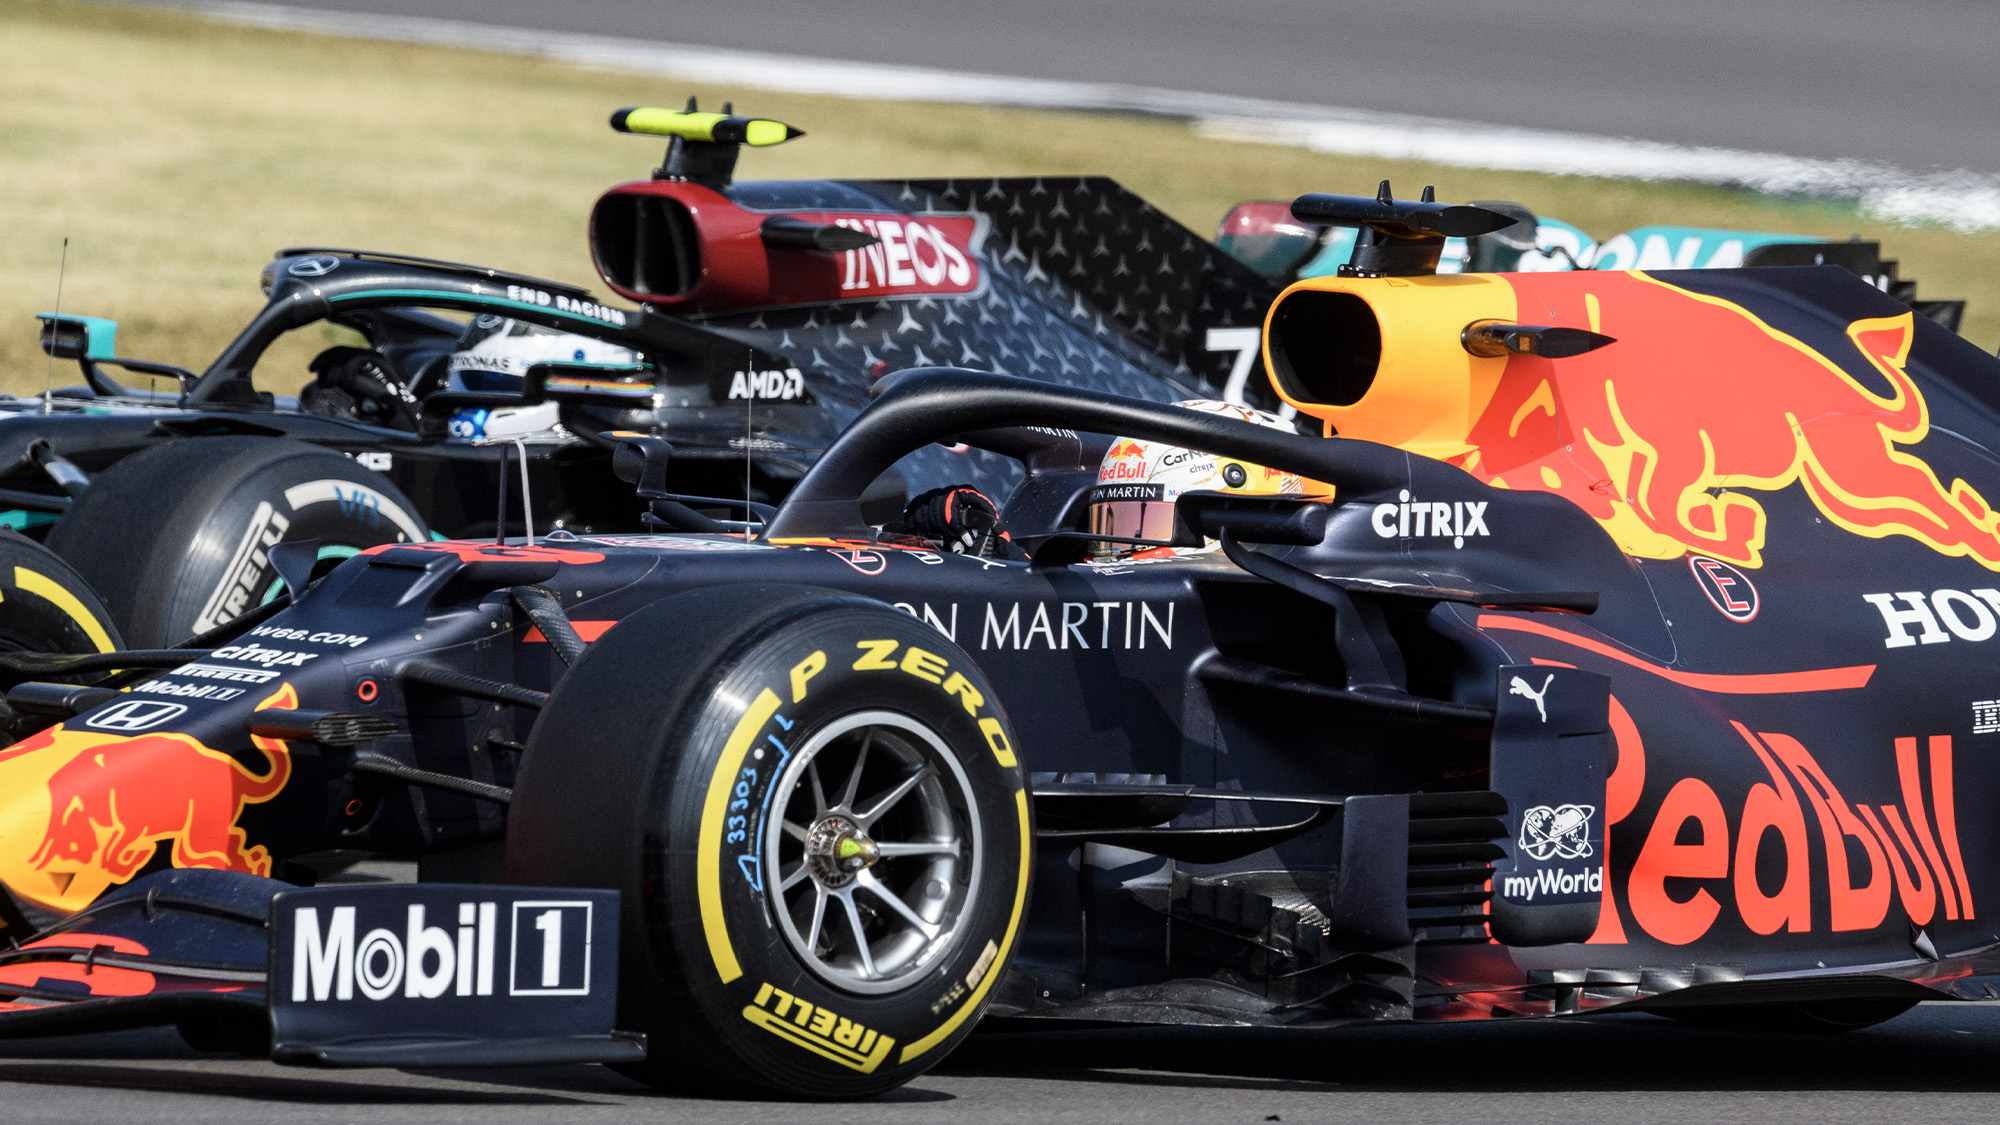 Max Verstappen passes Valtteri Bottas during the 2020 F1 70th Anniversary Grand Prix